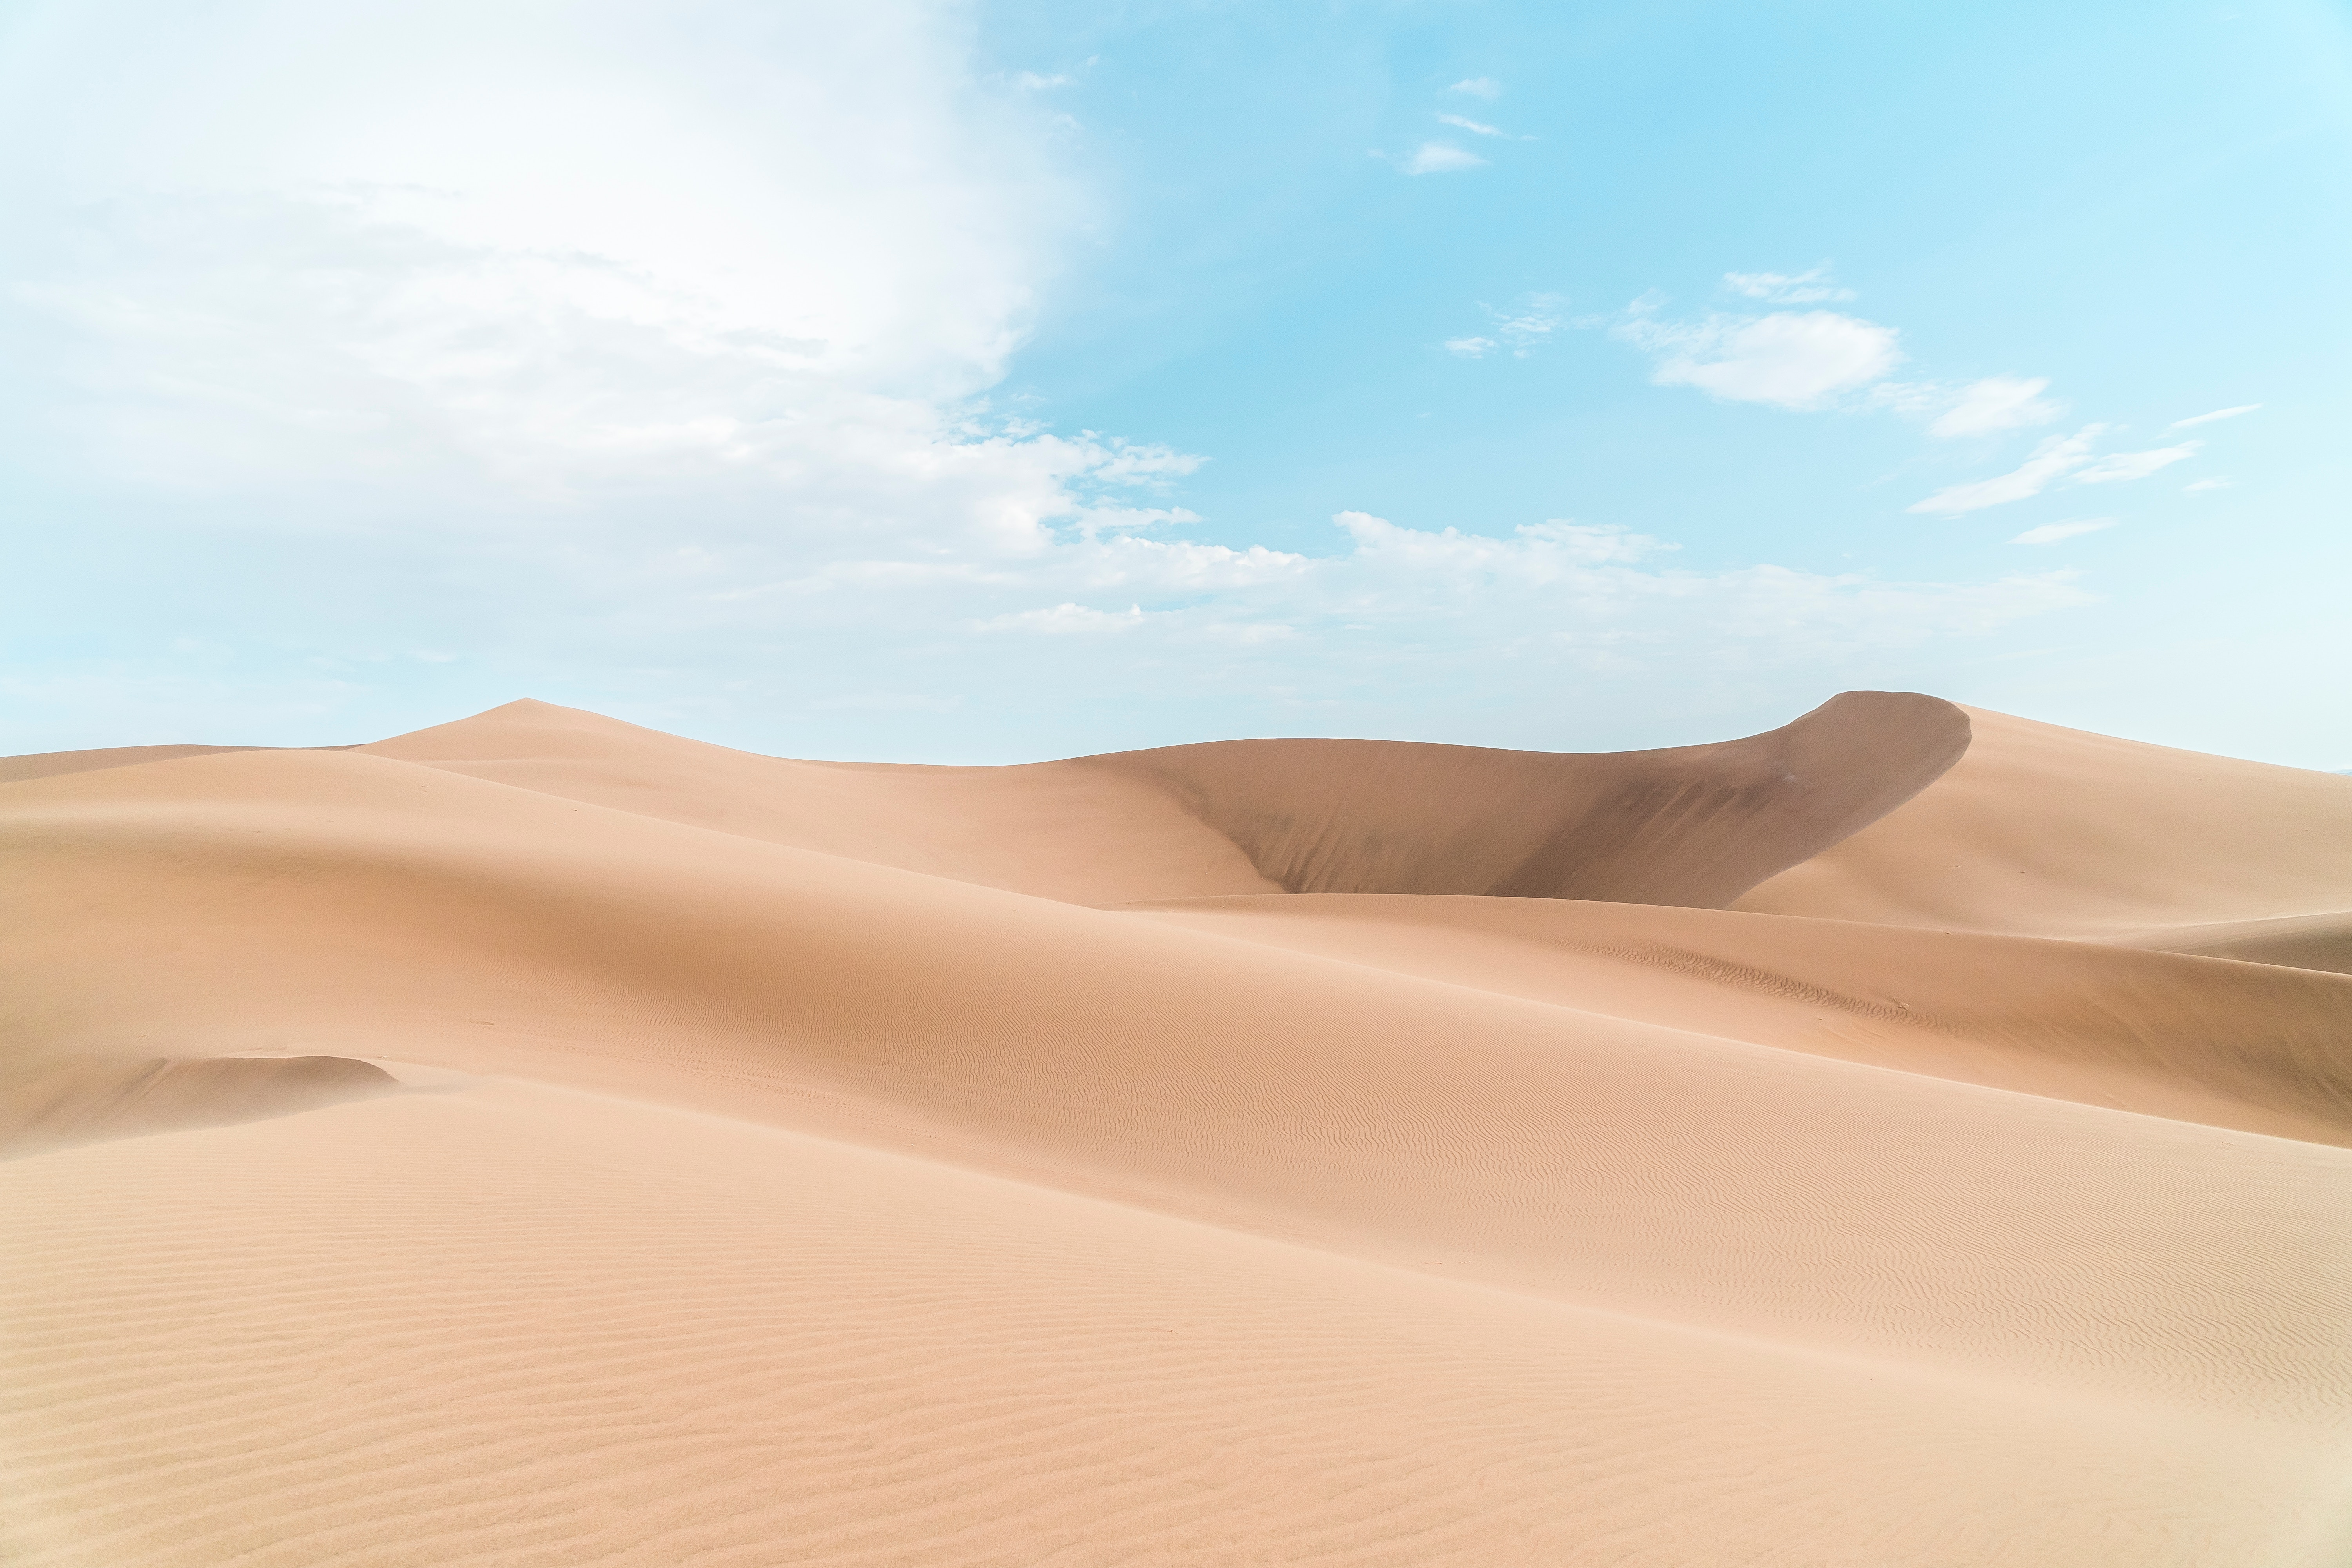 Peru Desert Hd Nature 4k Wallpapers Images Backgrounds Photos And Pictures